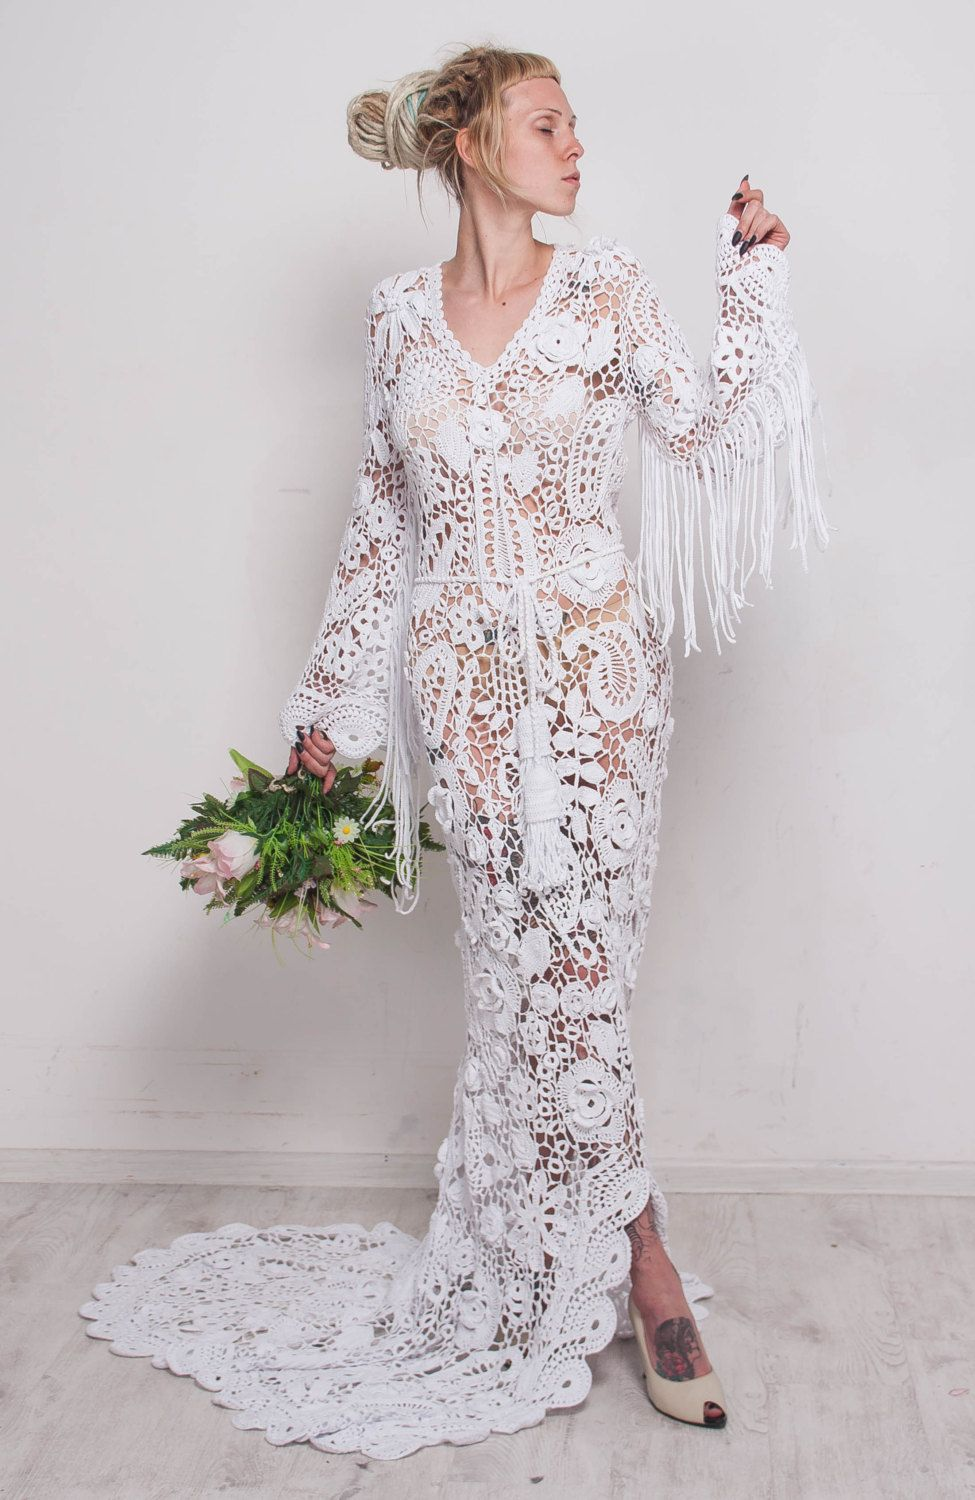 Maxi dress for wedding  Look at this tremendous crochet maxi dressThis wedding white